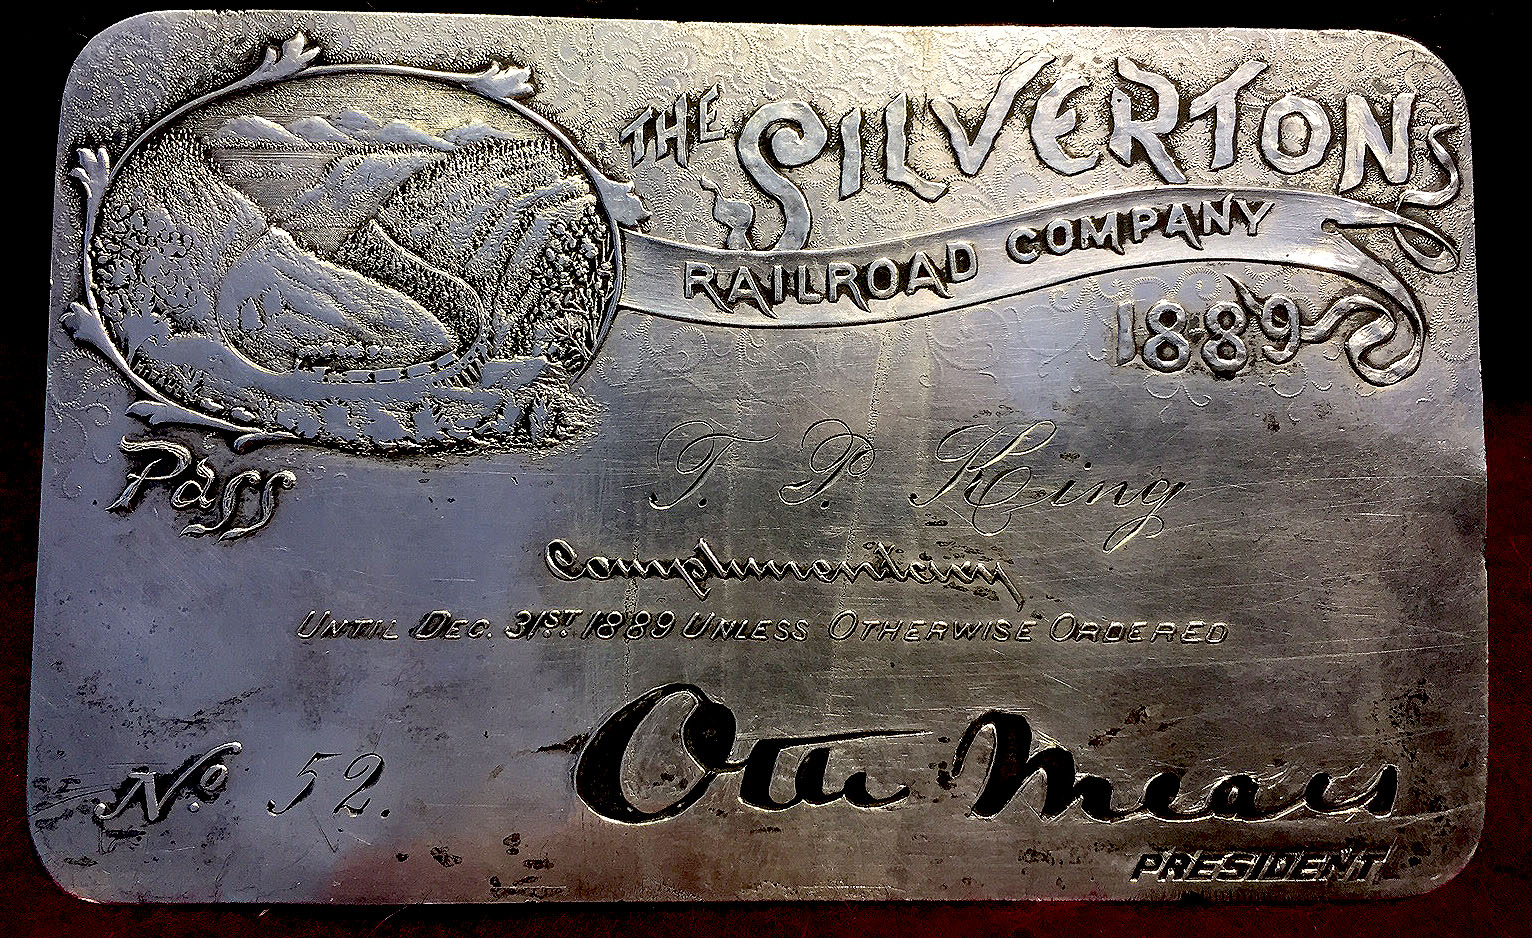 The Silverton Railroad Company Silver Pass 1889 Otto Mears